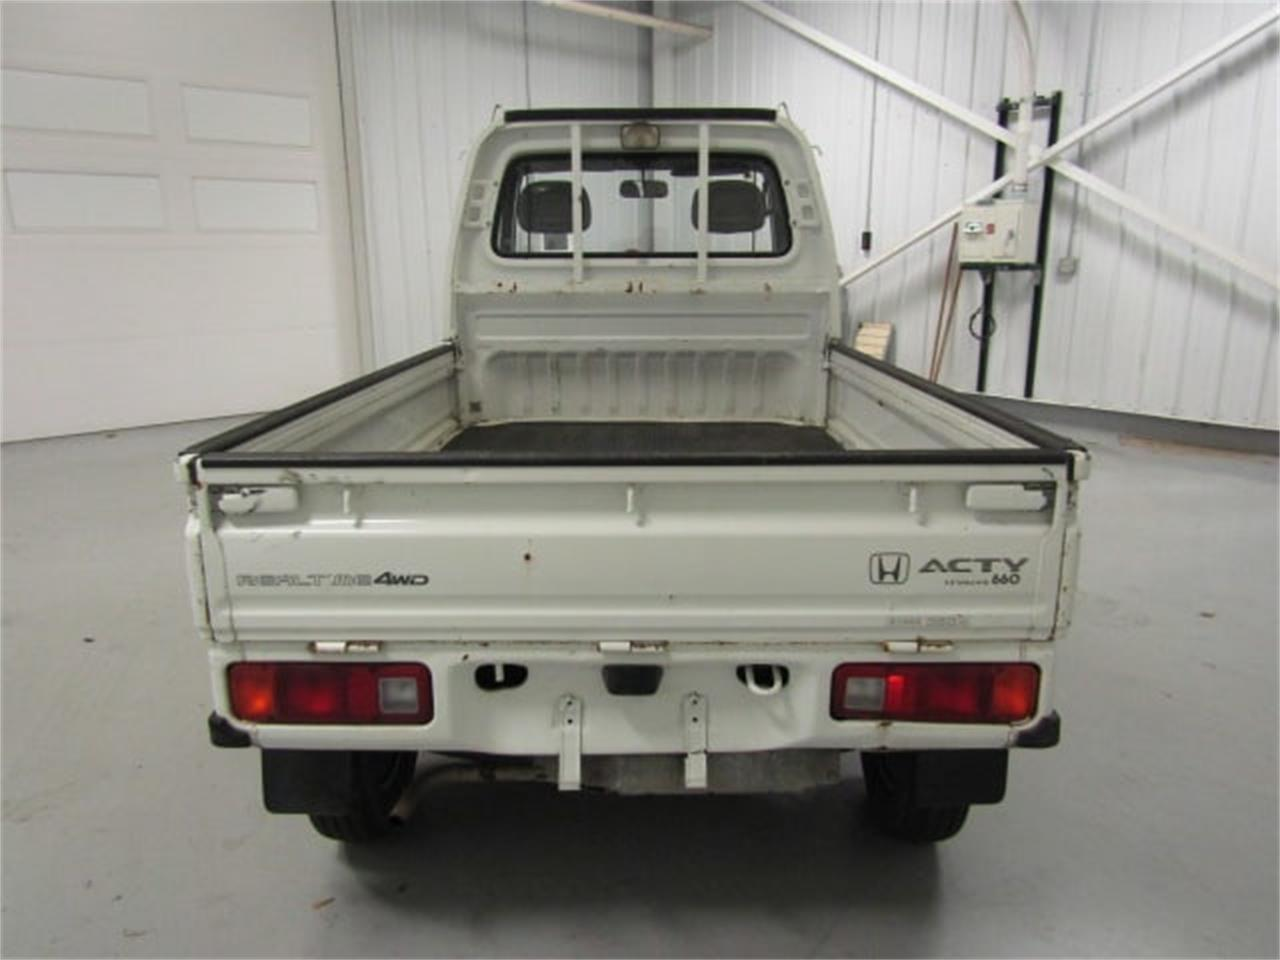 Large Picture of 1991 ACTY located in Virginia - $6,500.00 Offered by Duncan Imports & Classic Cars - JM5L